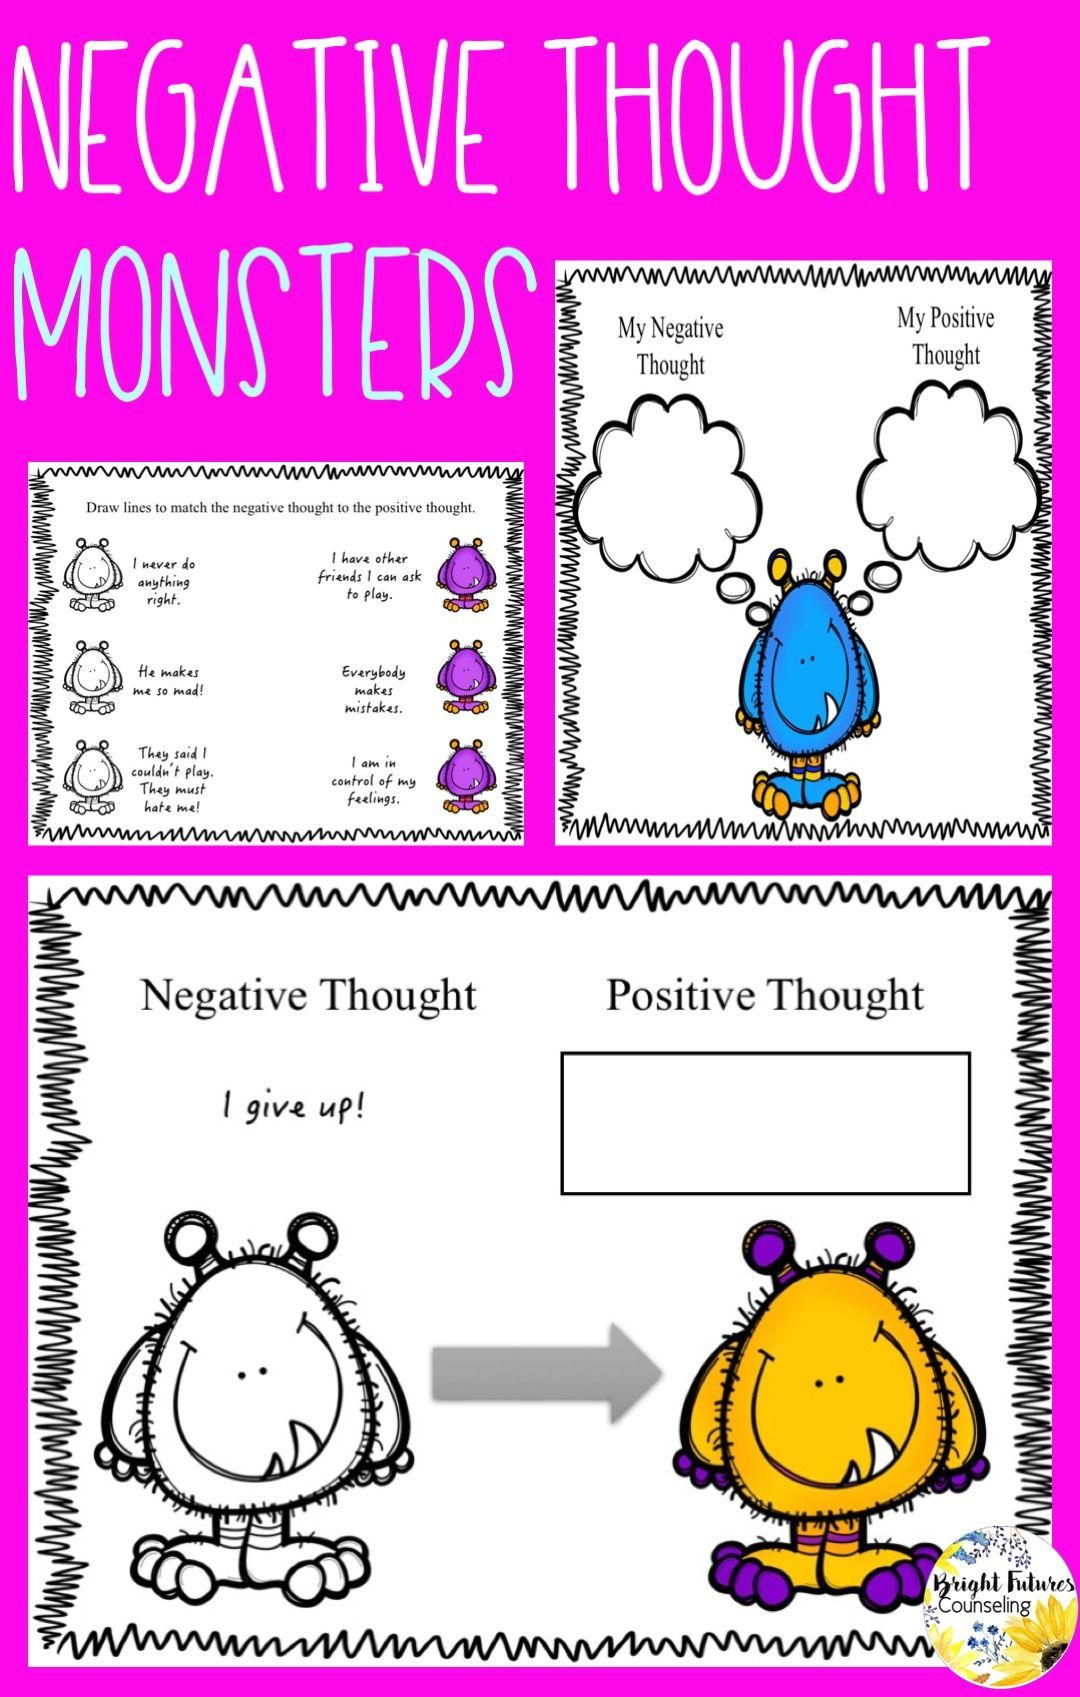 Negative Thought Monsters